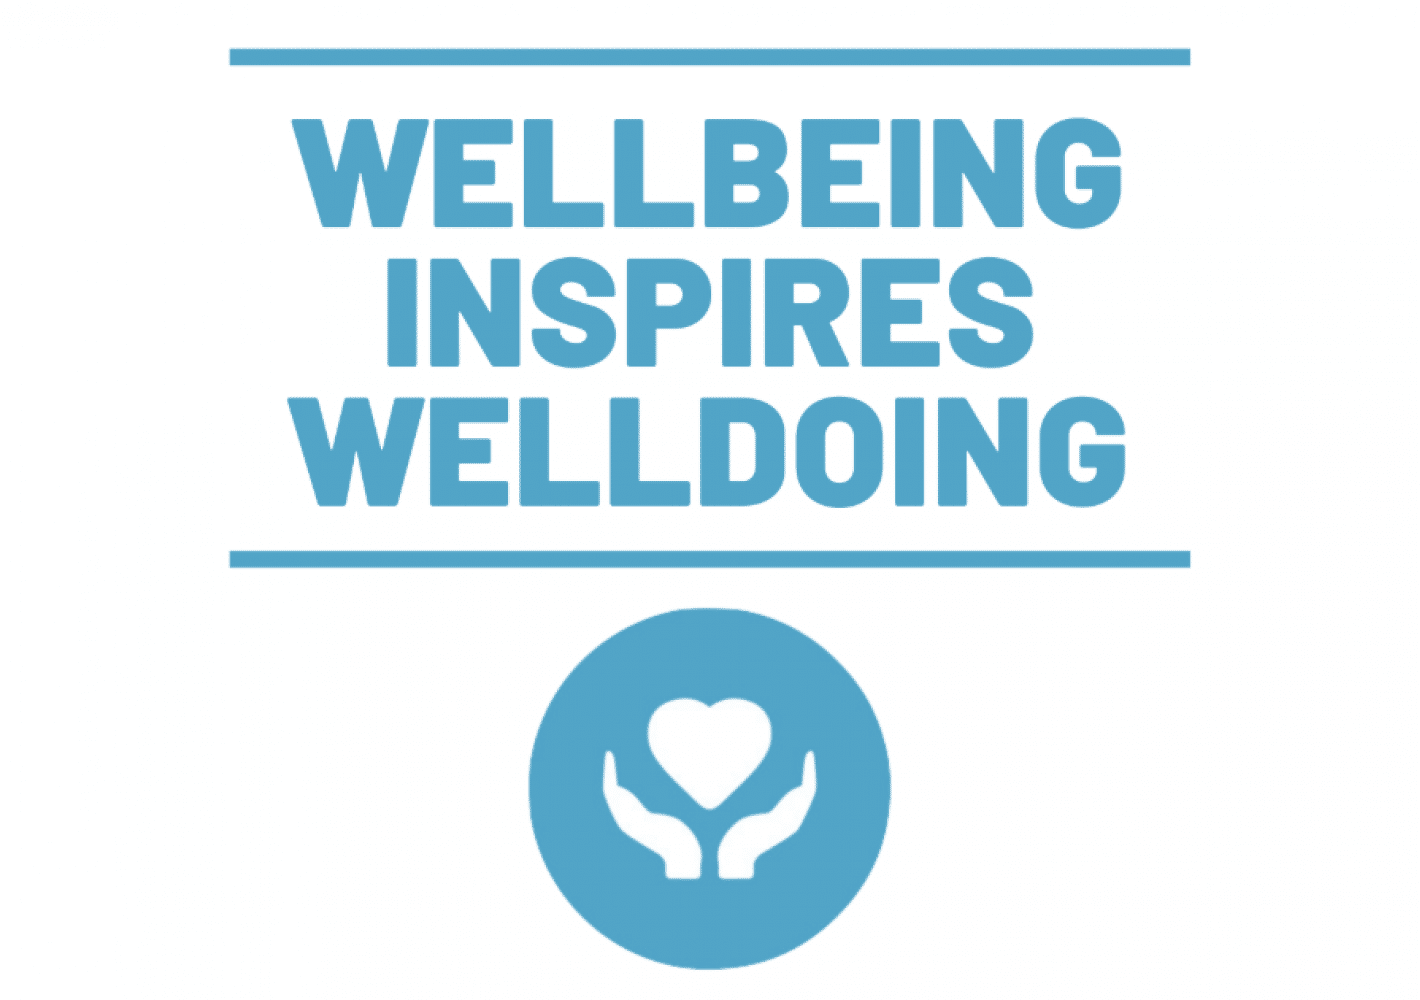 Wellbeing Inspires Welldoing